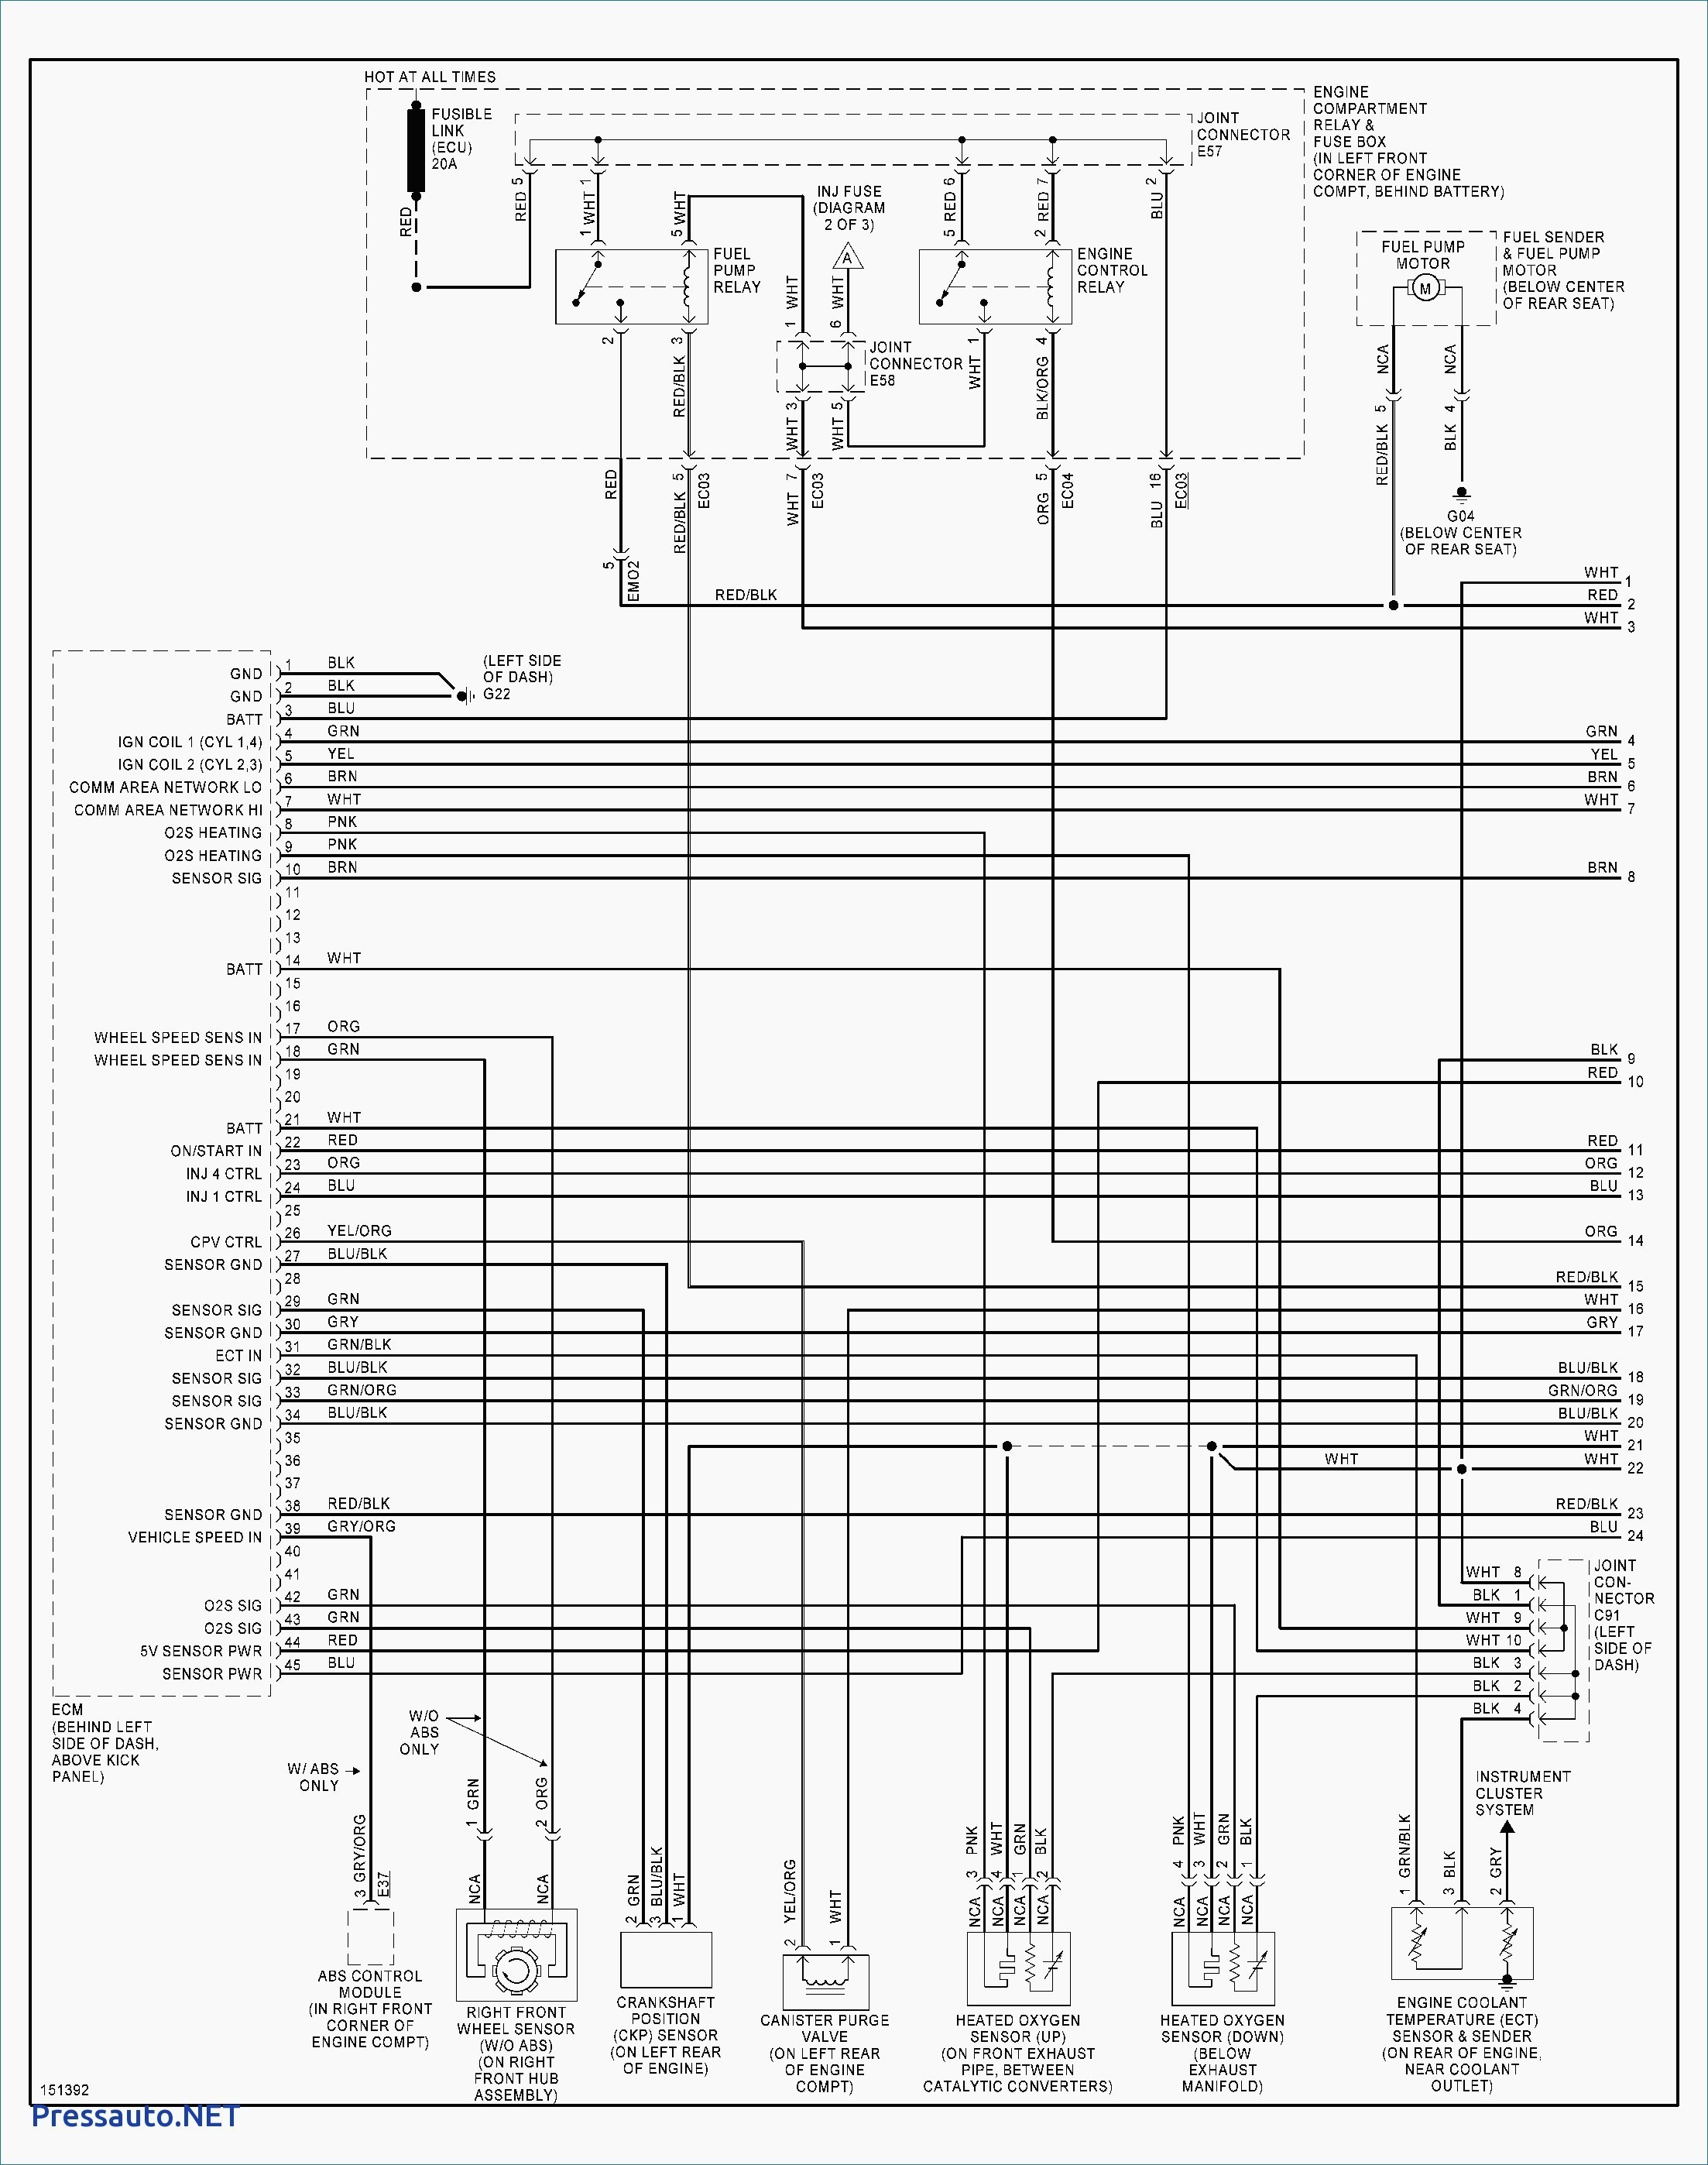 2017 Hyundai Elantra Radio Wiring Diagram from detoxicrecenze.com